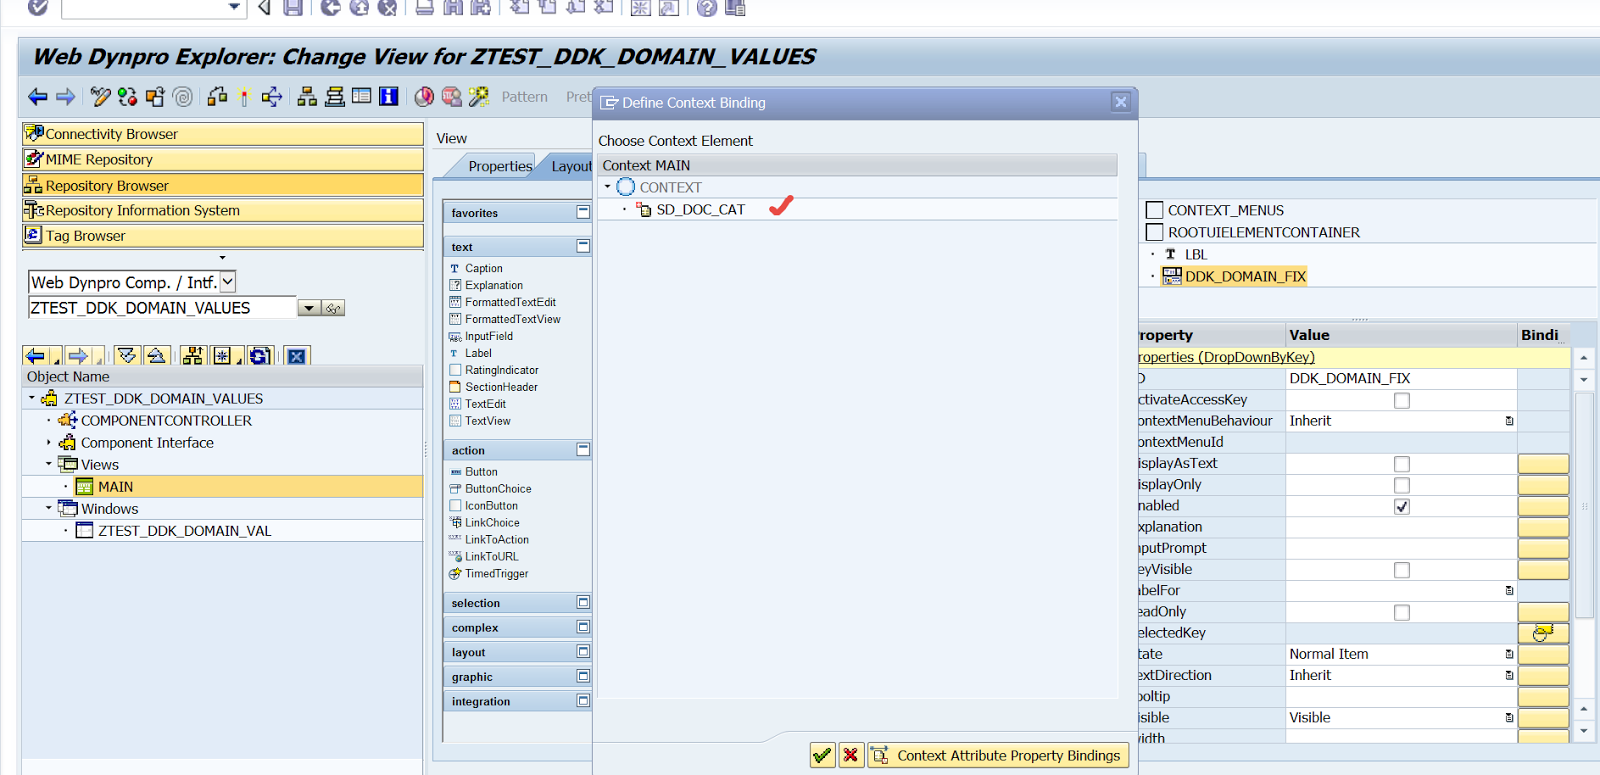 DropDown With Key using Domain fixed Values – SAPCODES